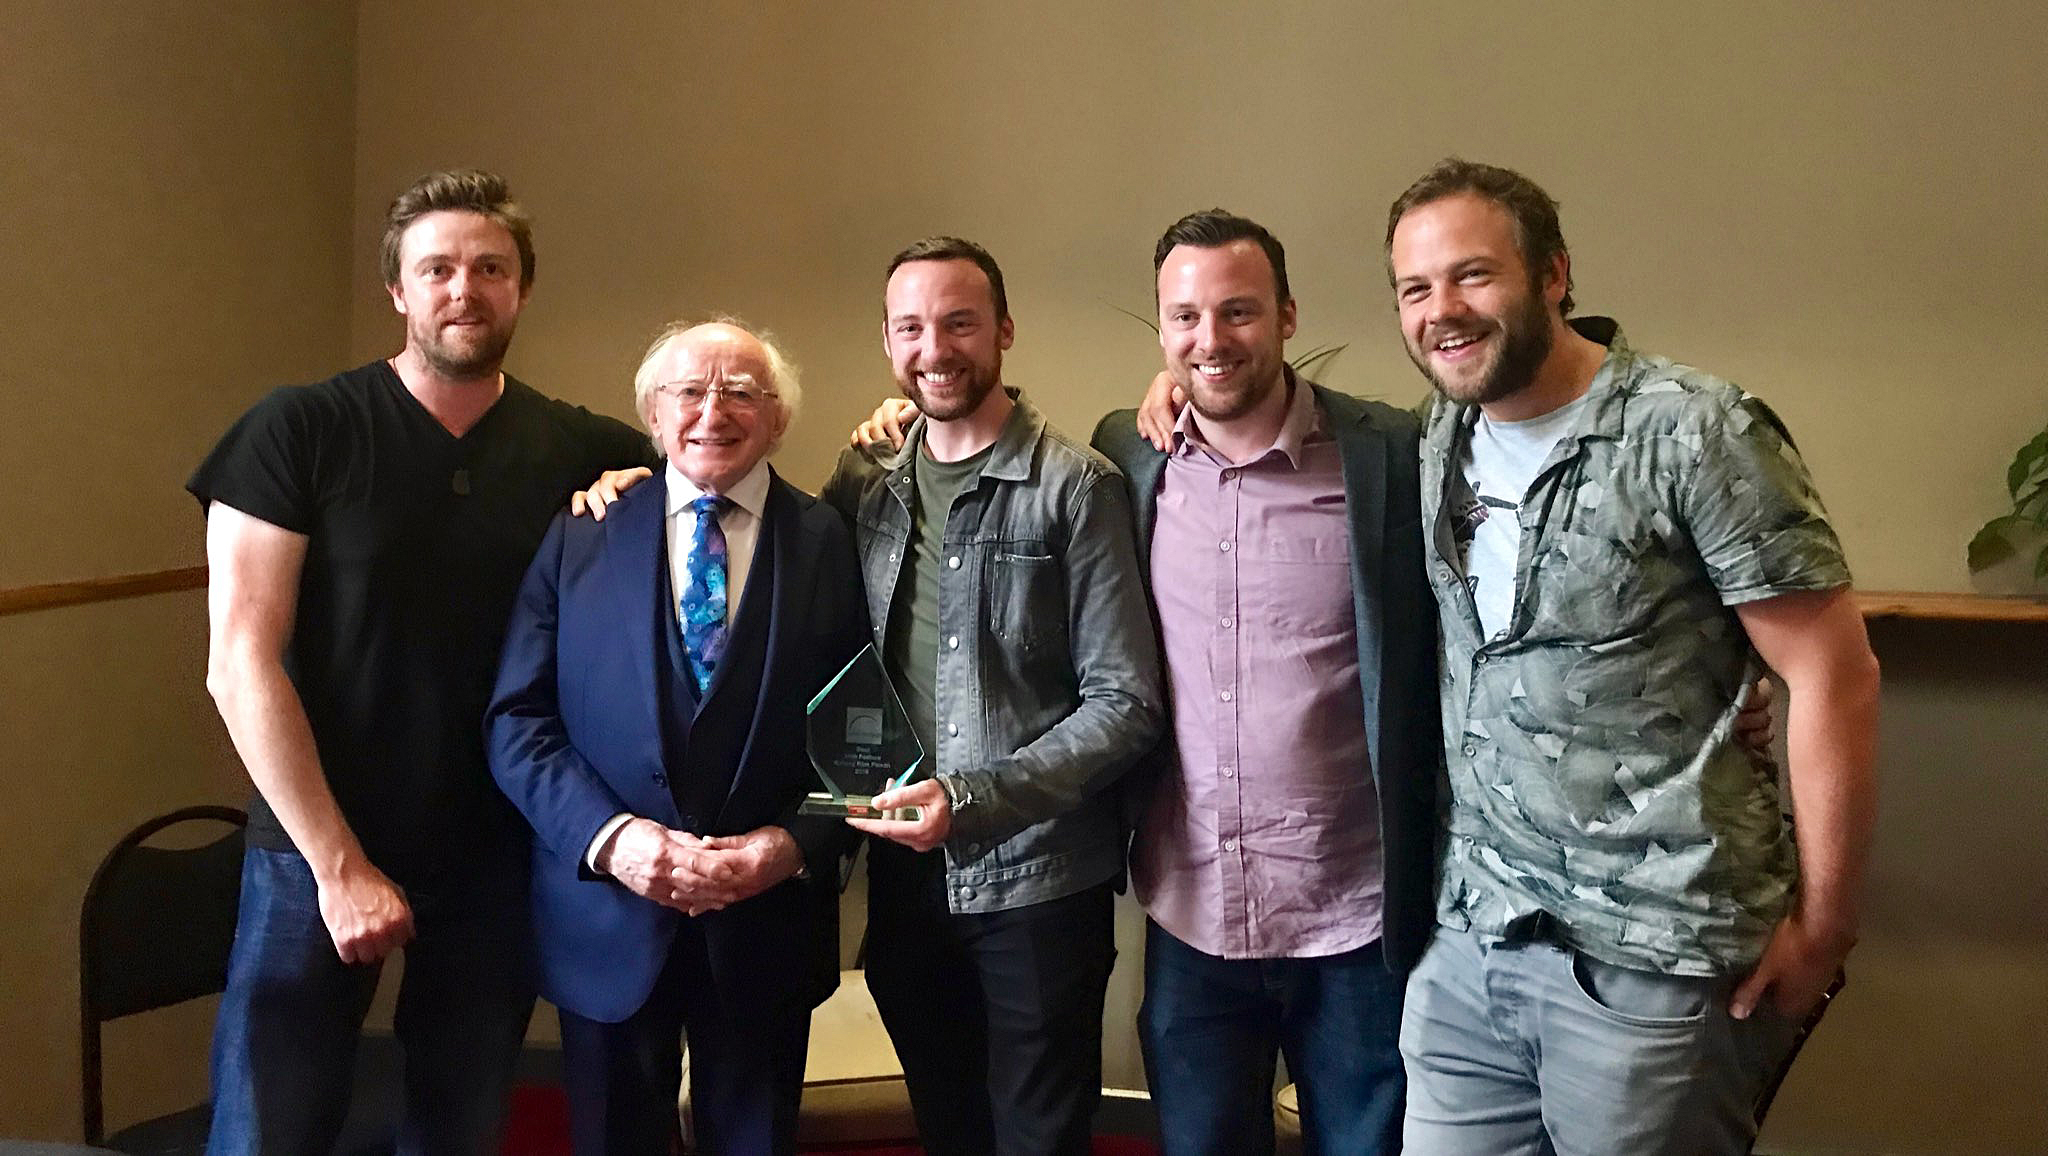 L-R Brian Falconer (Producer, Out of Orbit Films), Michael D Higgins (President of Ireland), Ryan and Andy Tohill (Directors) and actor Moe Dunford (Ronan Callahan).